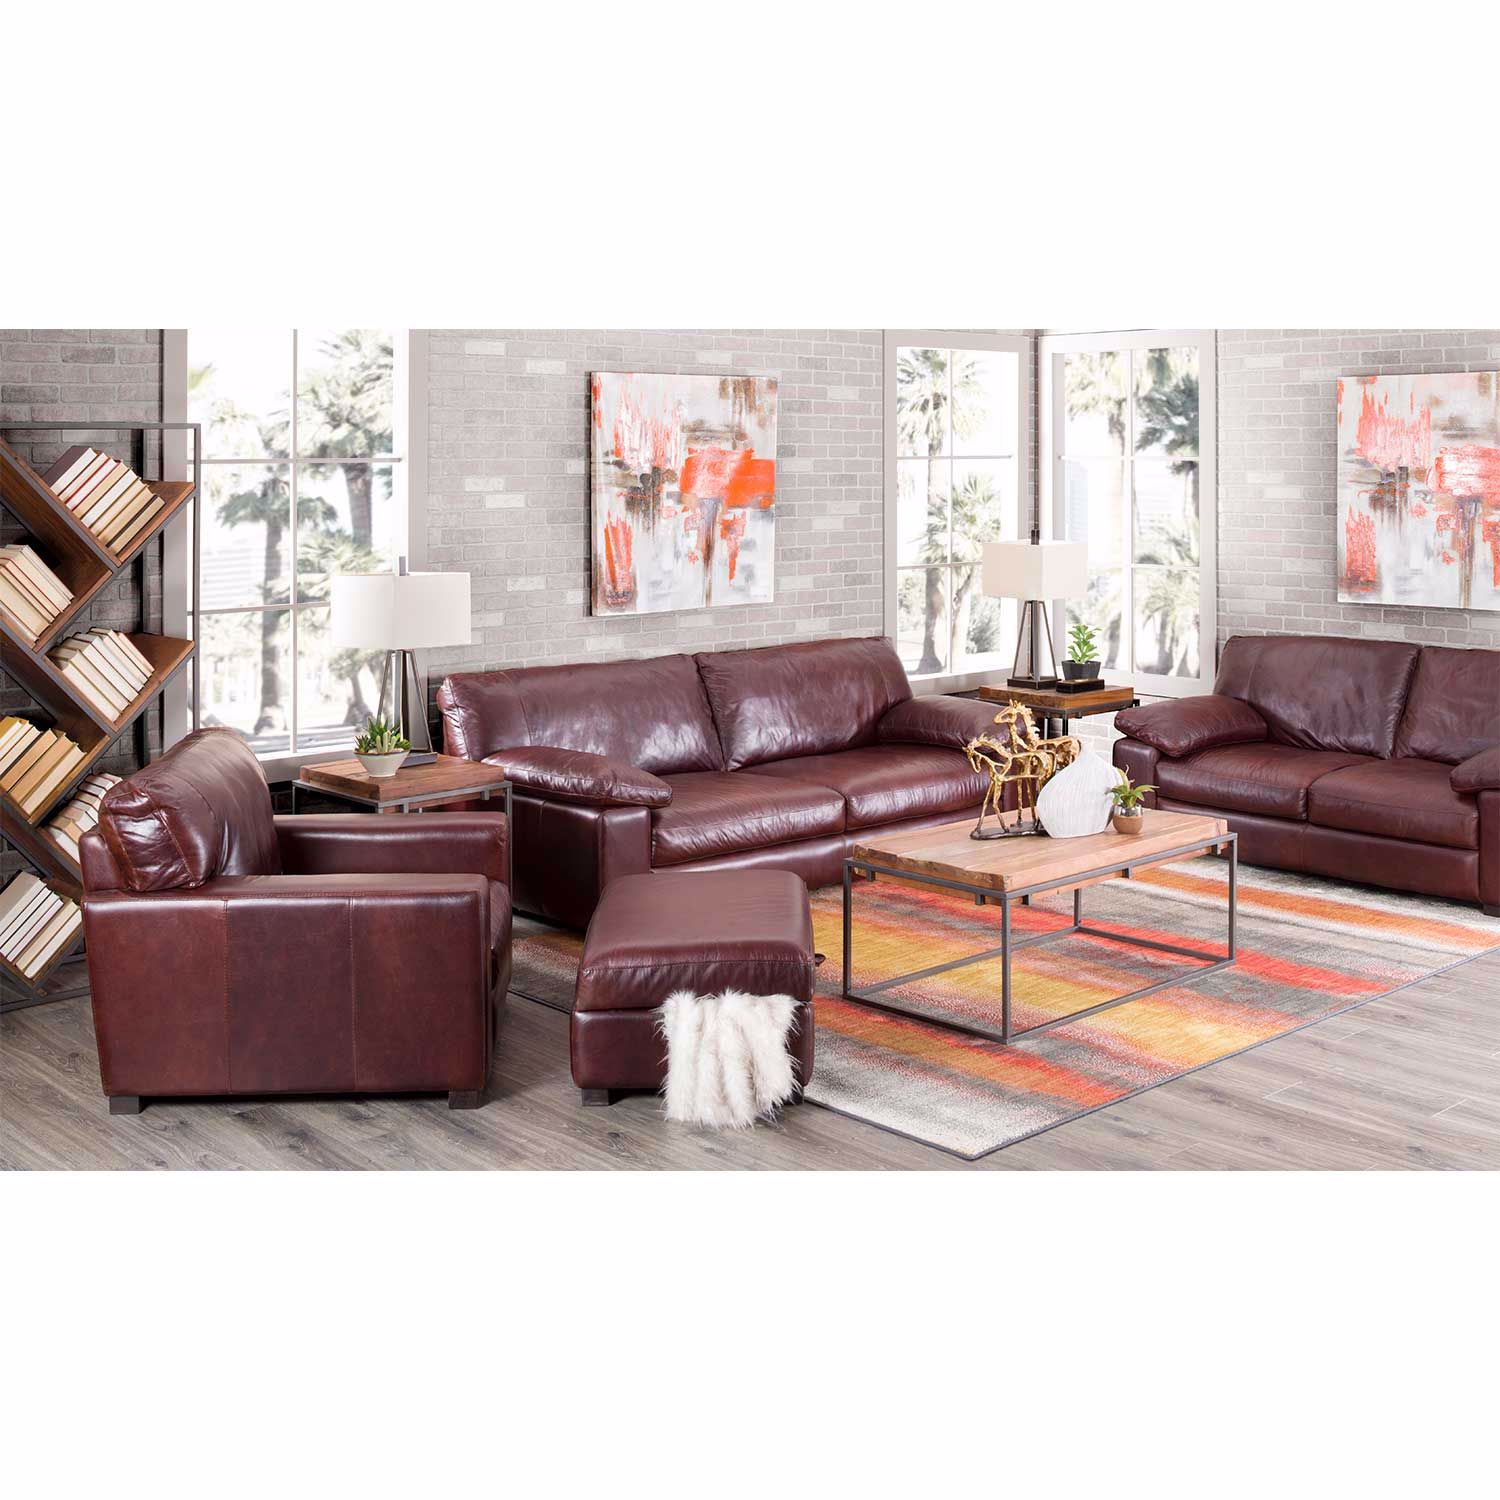 Excellent Barcelona All Leather Sofa Unemploymentrelief Wooden Chair Designs For Living Room Unemploymentrelieforg